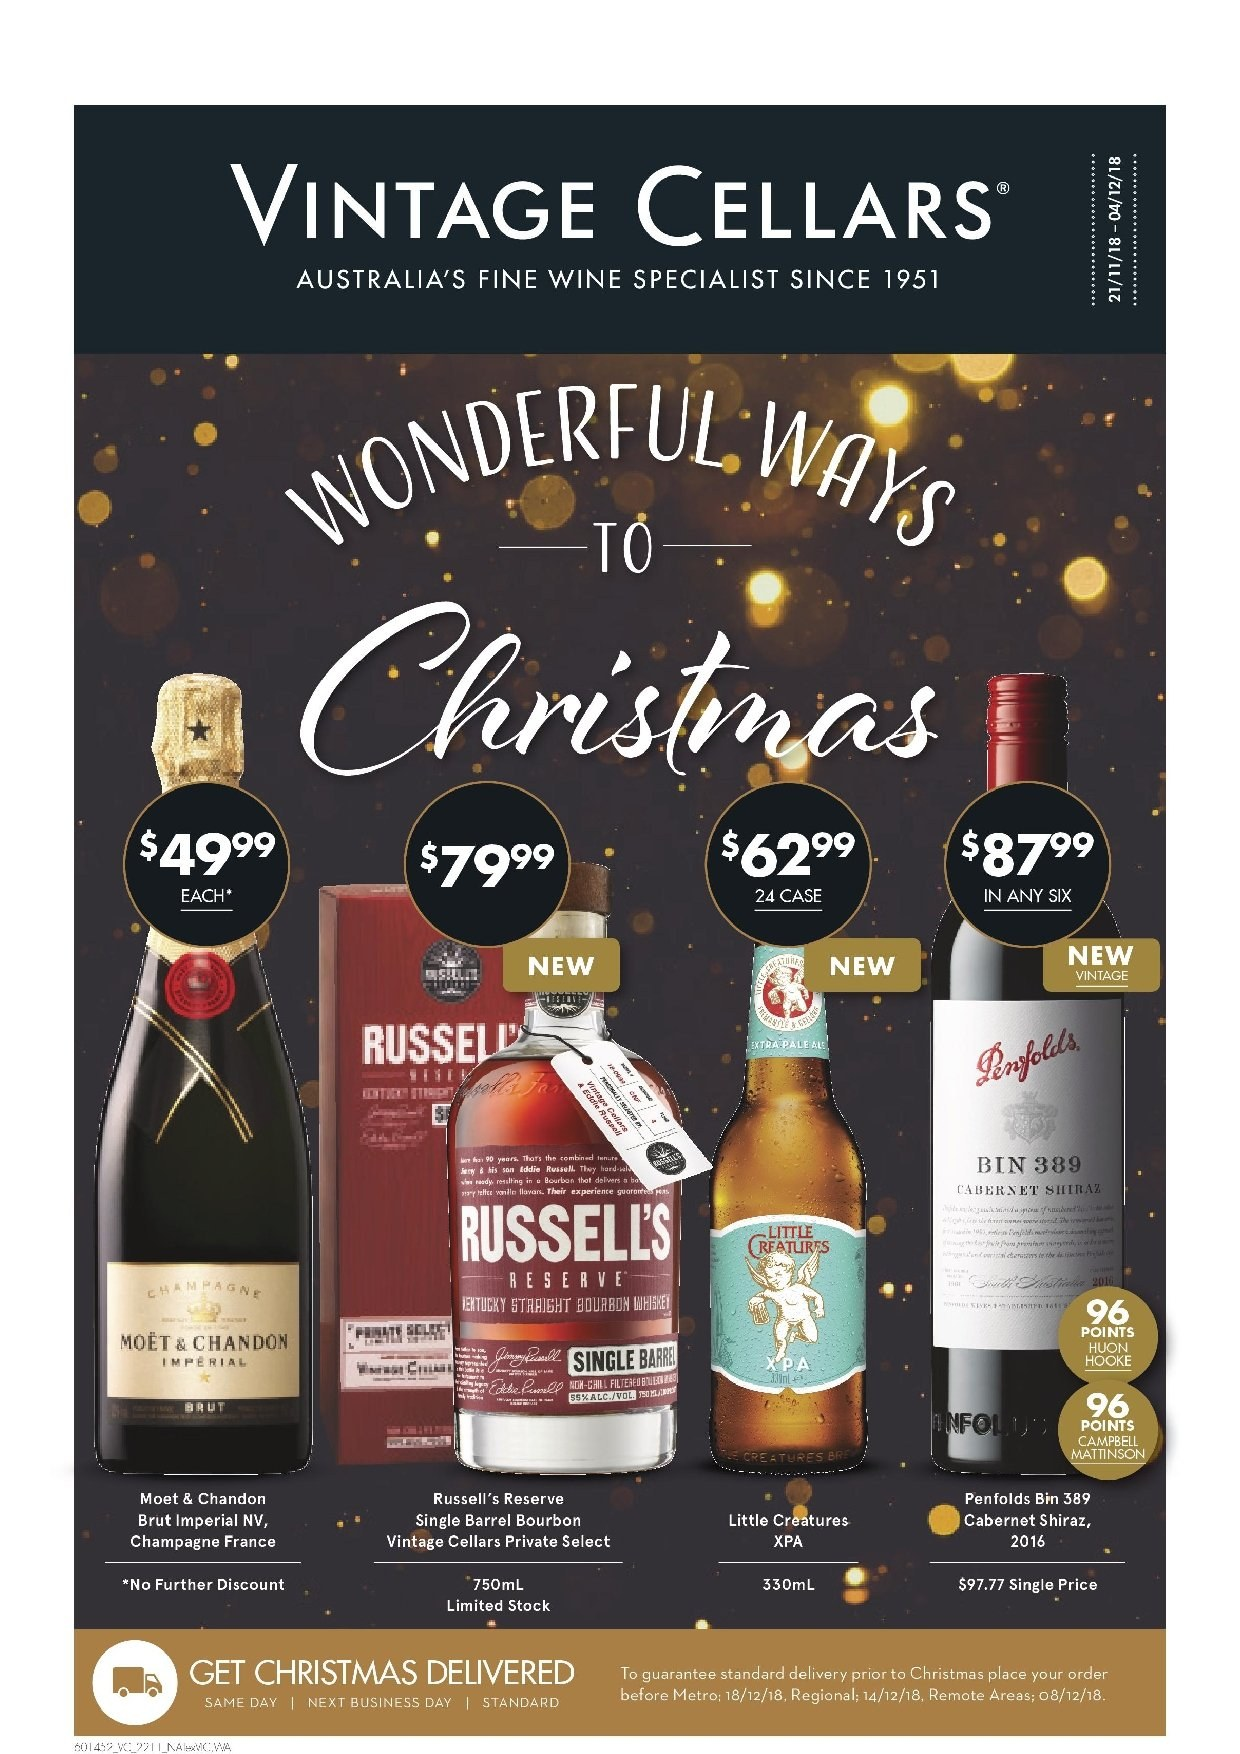 Vintage Cellars Catalogue - 21.11.2018 - 4.12.2018 - Sales products - Cabernet Sauvignon, champagne, wine, Moët & Chandon, Shiraz, bourbon. Page 1.